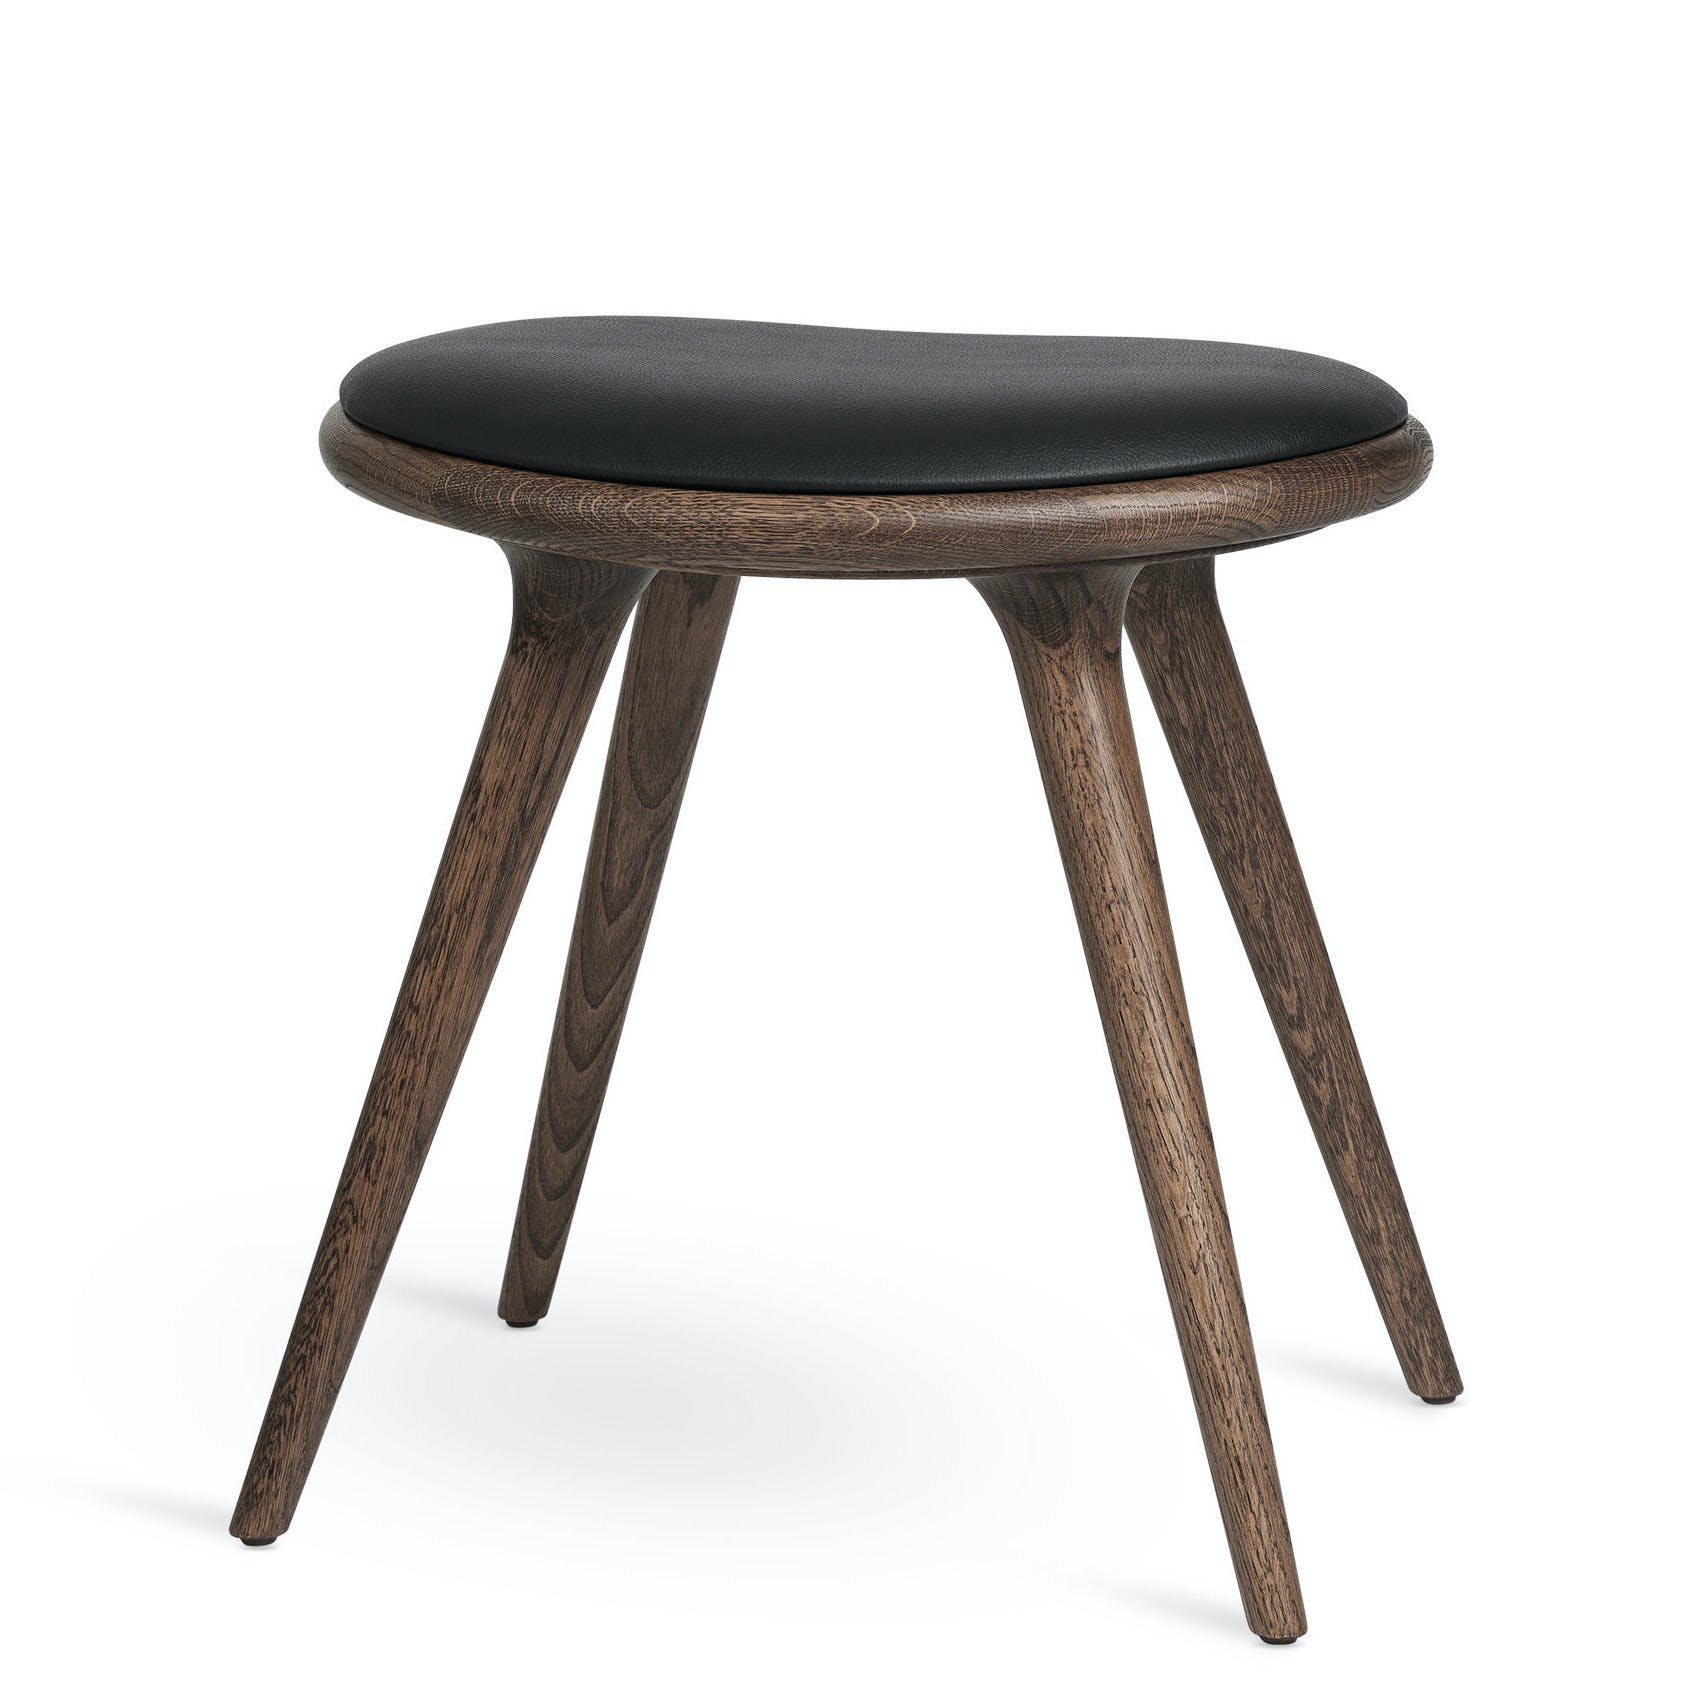 Mater Dark Stained Oak Low Stool Haute Living 181017 203127